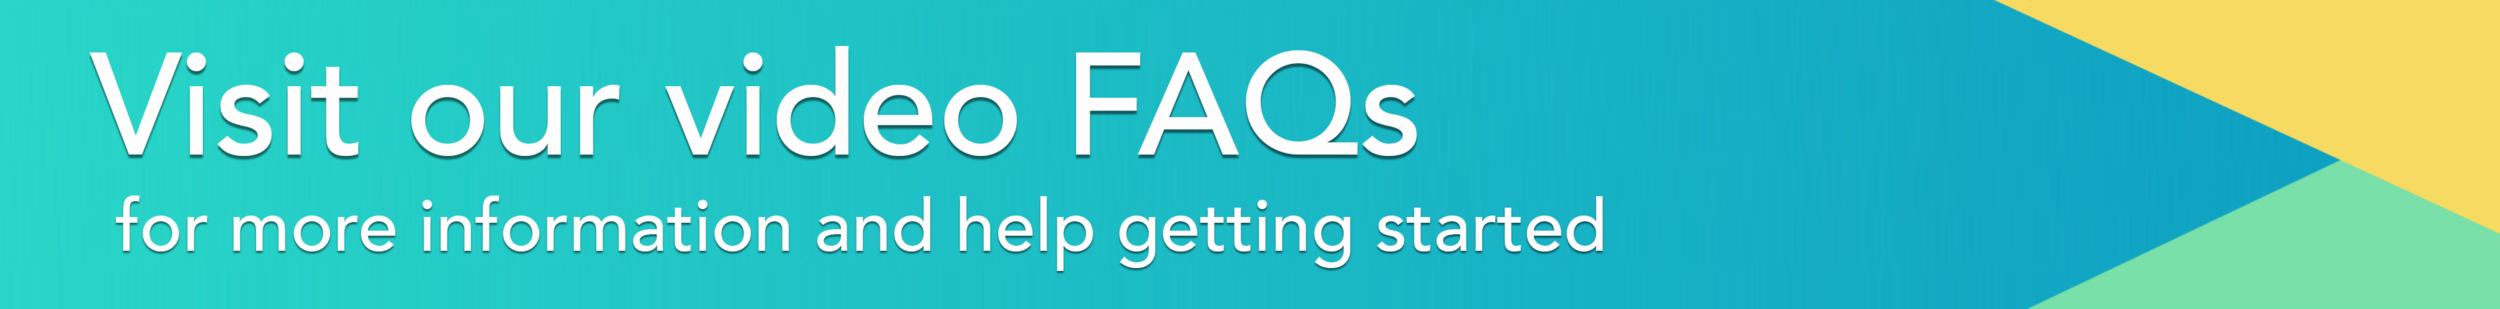 Visit our video FAQs for more help getting started